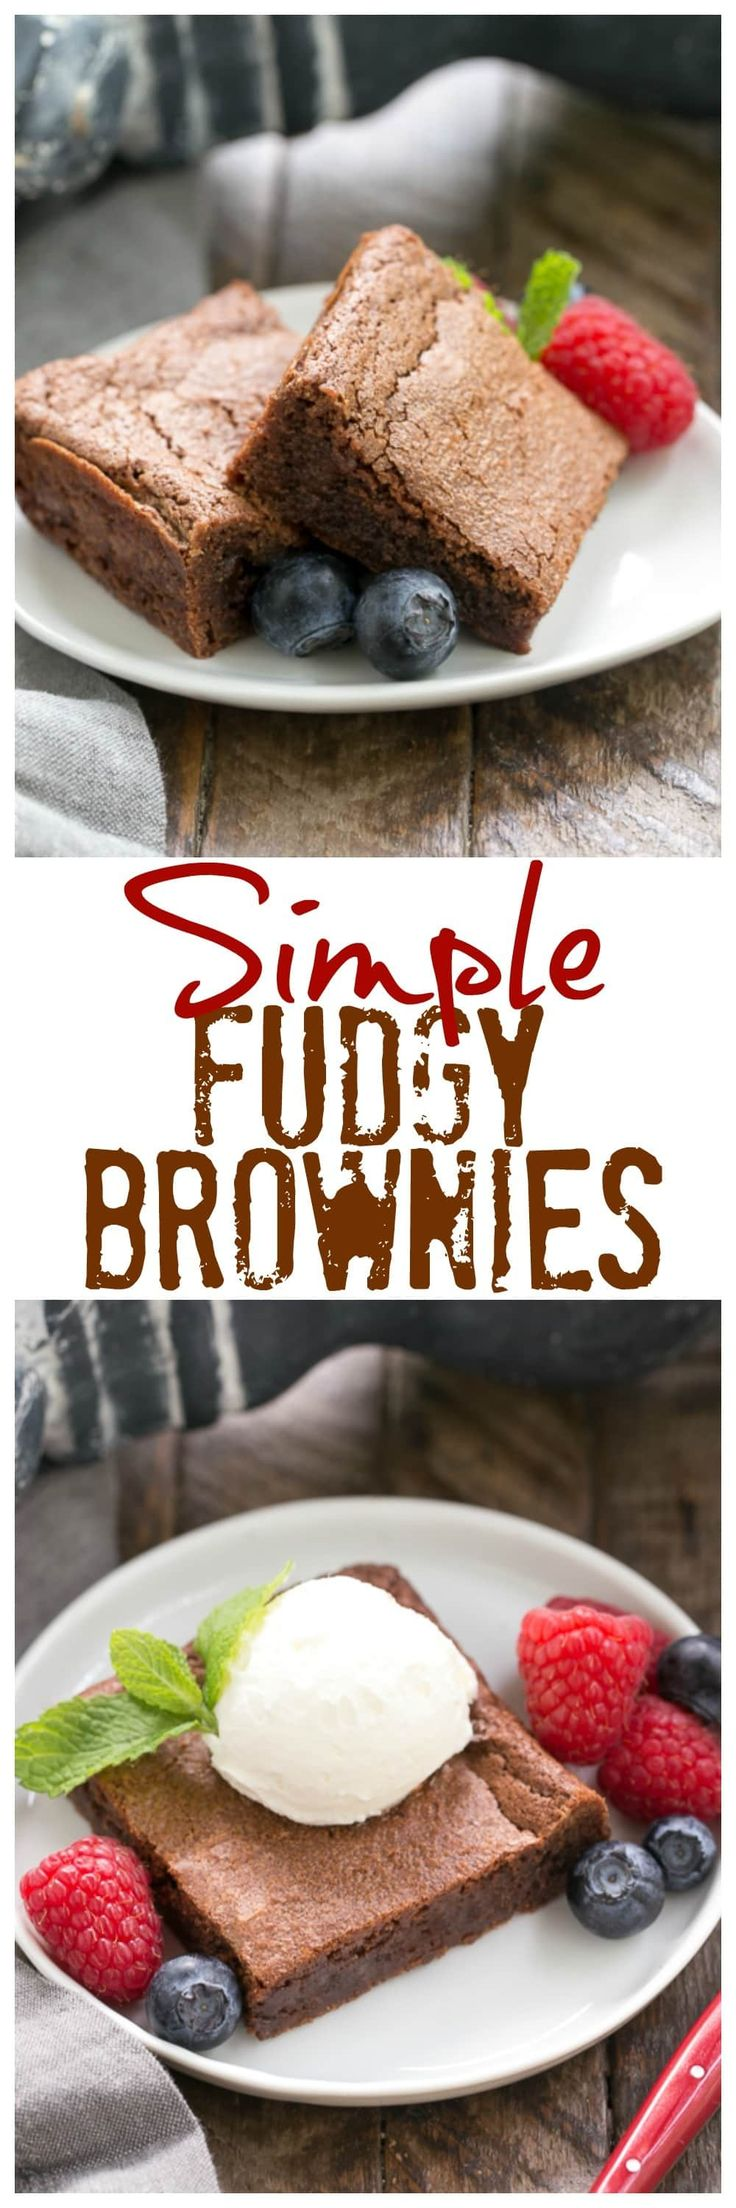 Simple Fudgy Brownies | An unusual technique to make the fudgiest brownies ever! @lizzydo